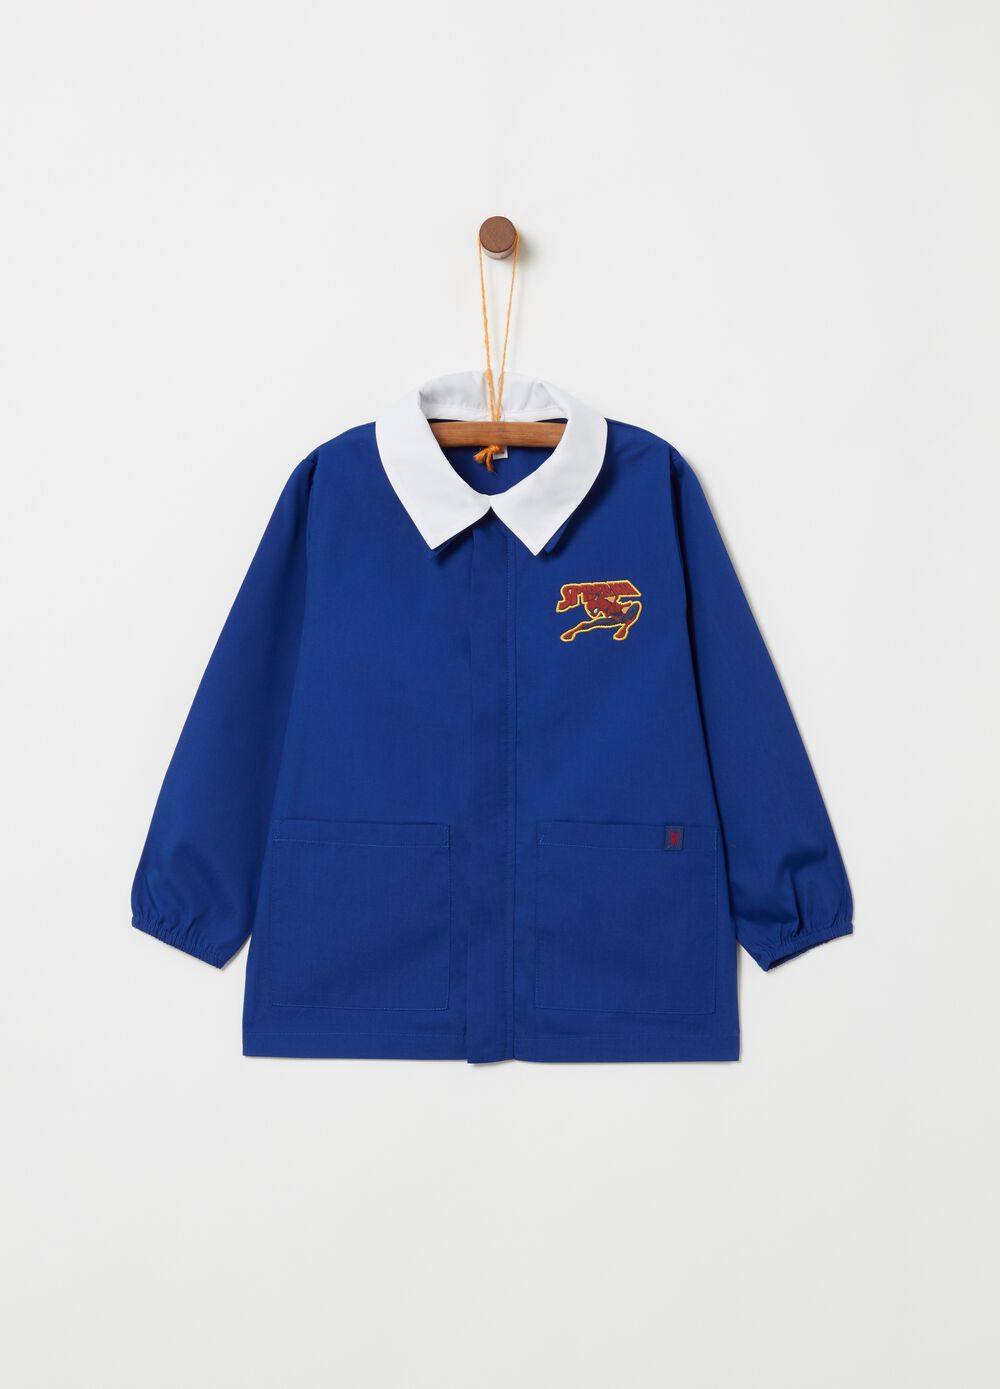 School smock with Spiderman embroidery and pockets